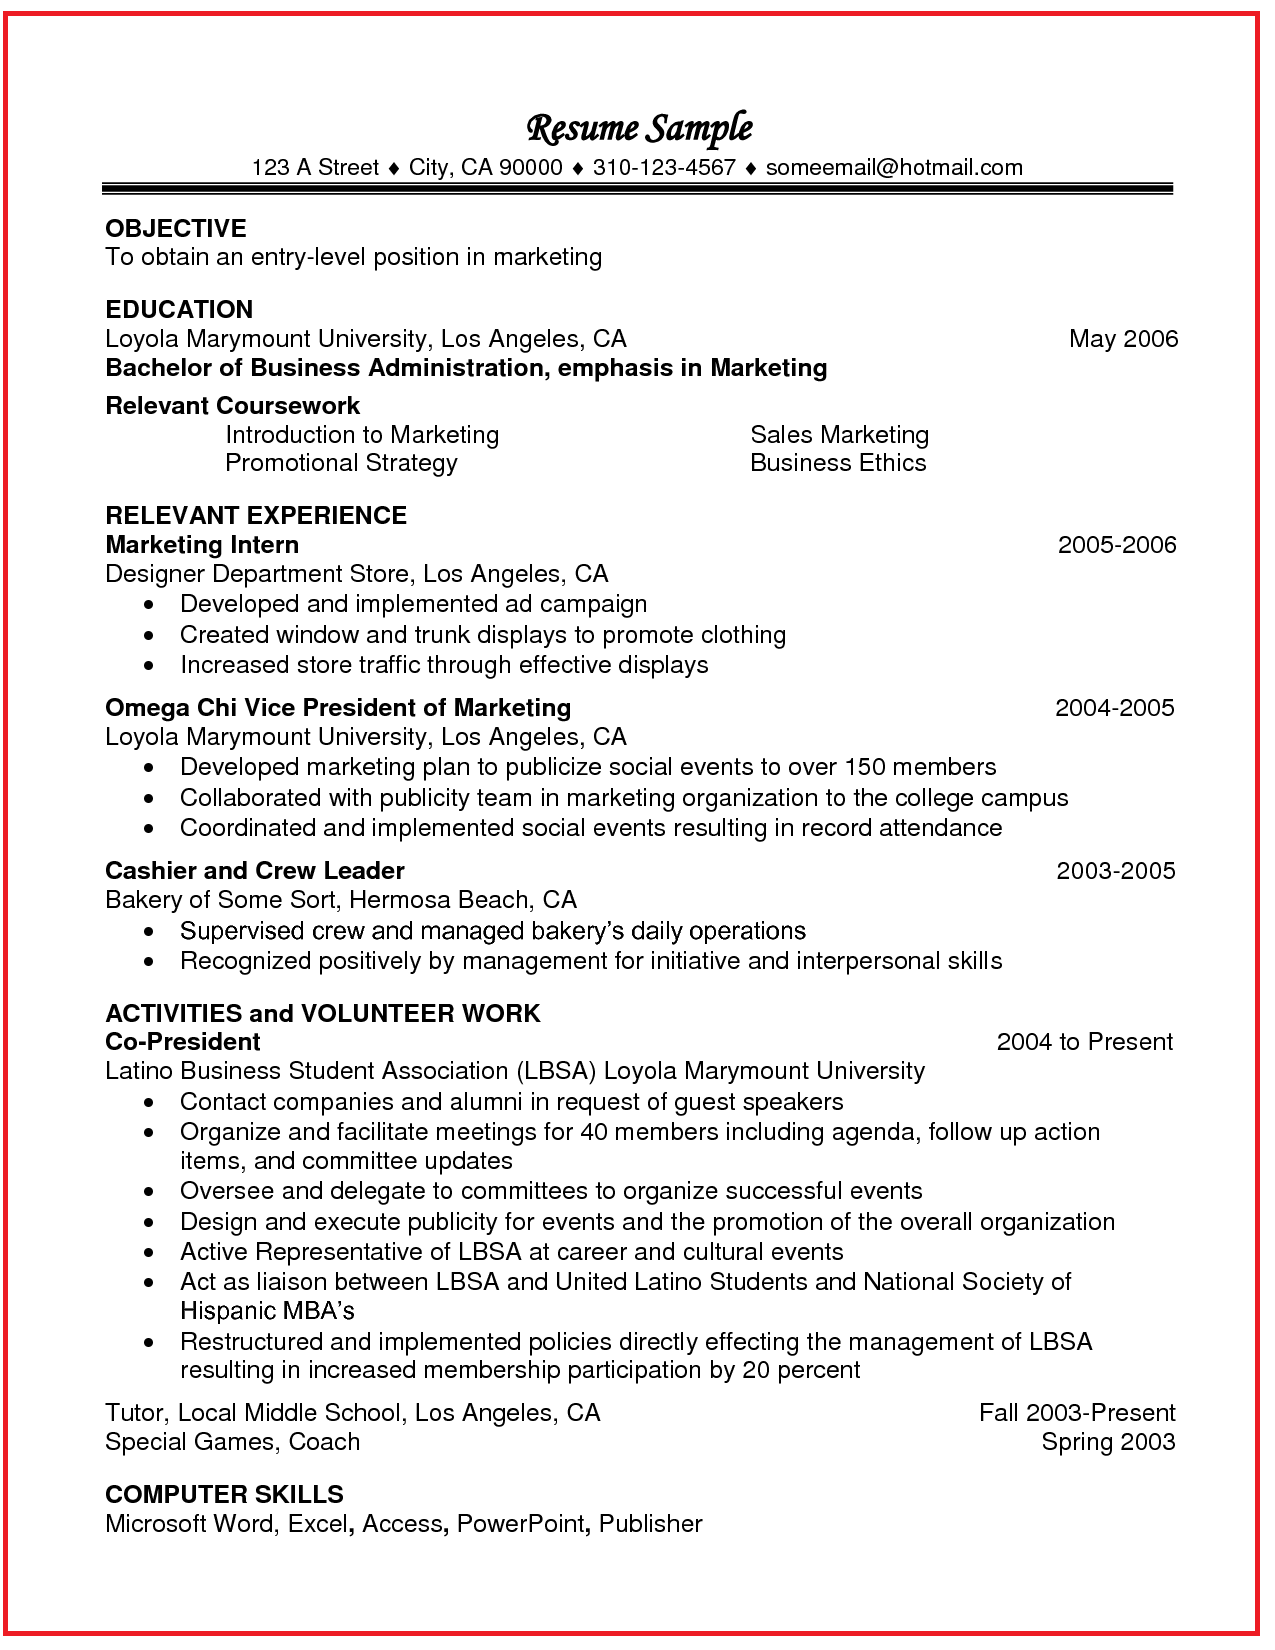 Coursework on a resume professional experience